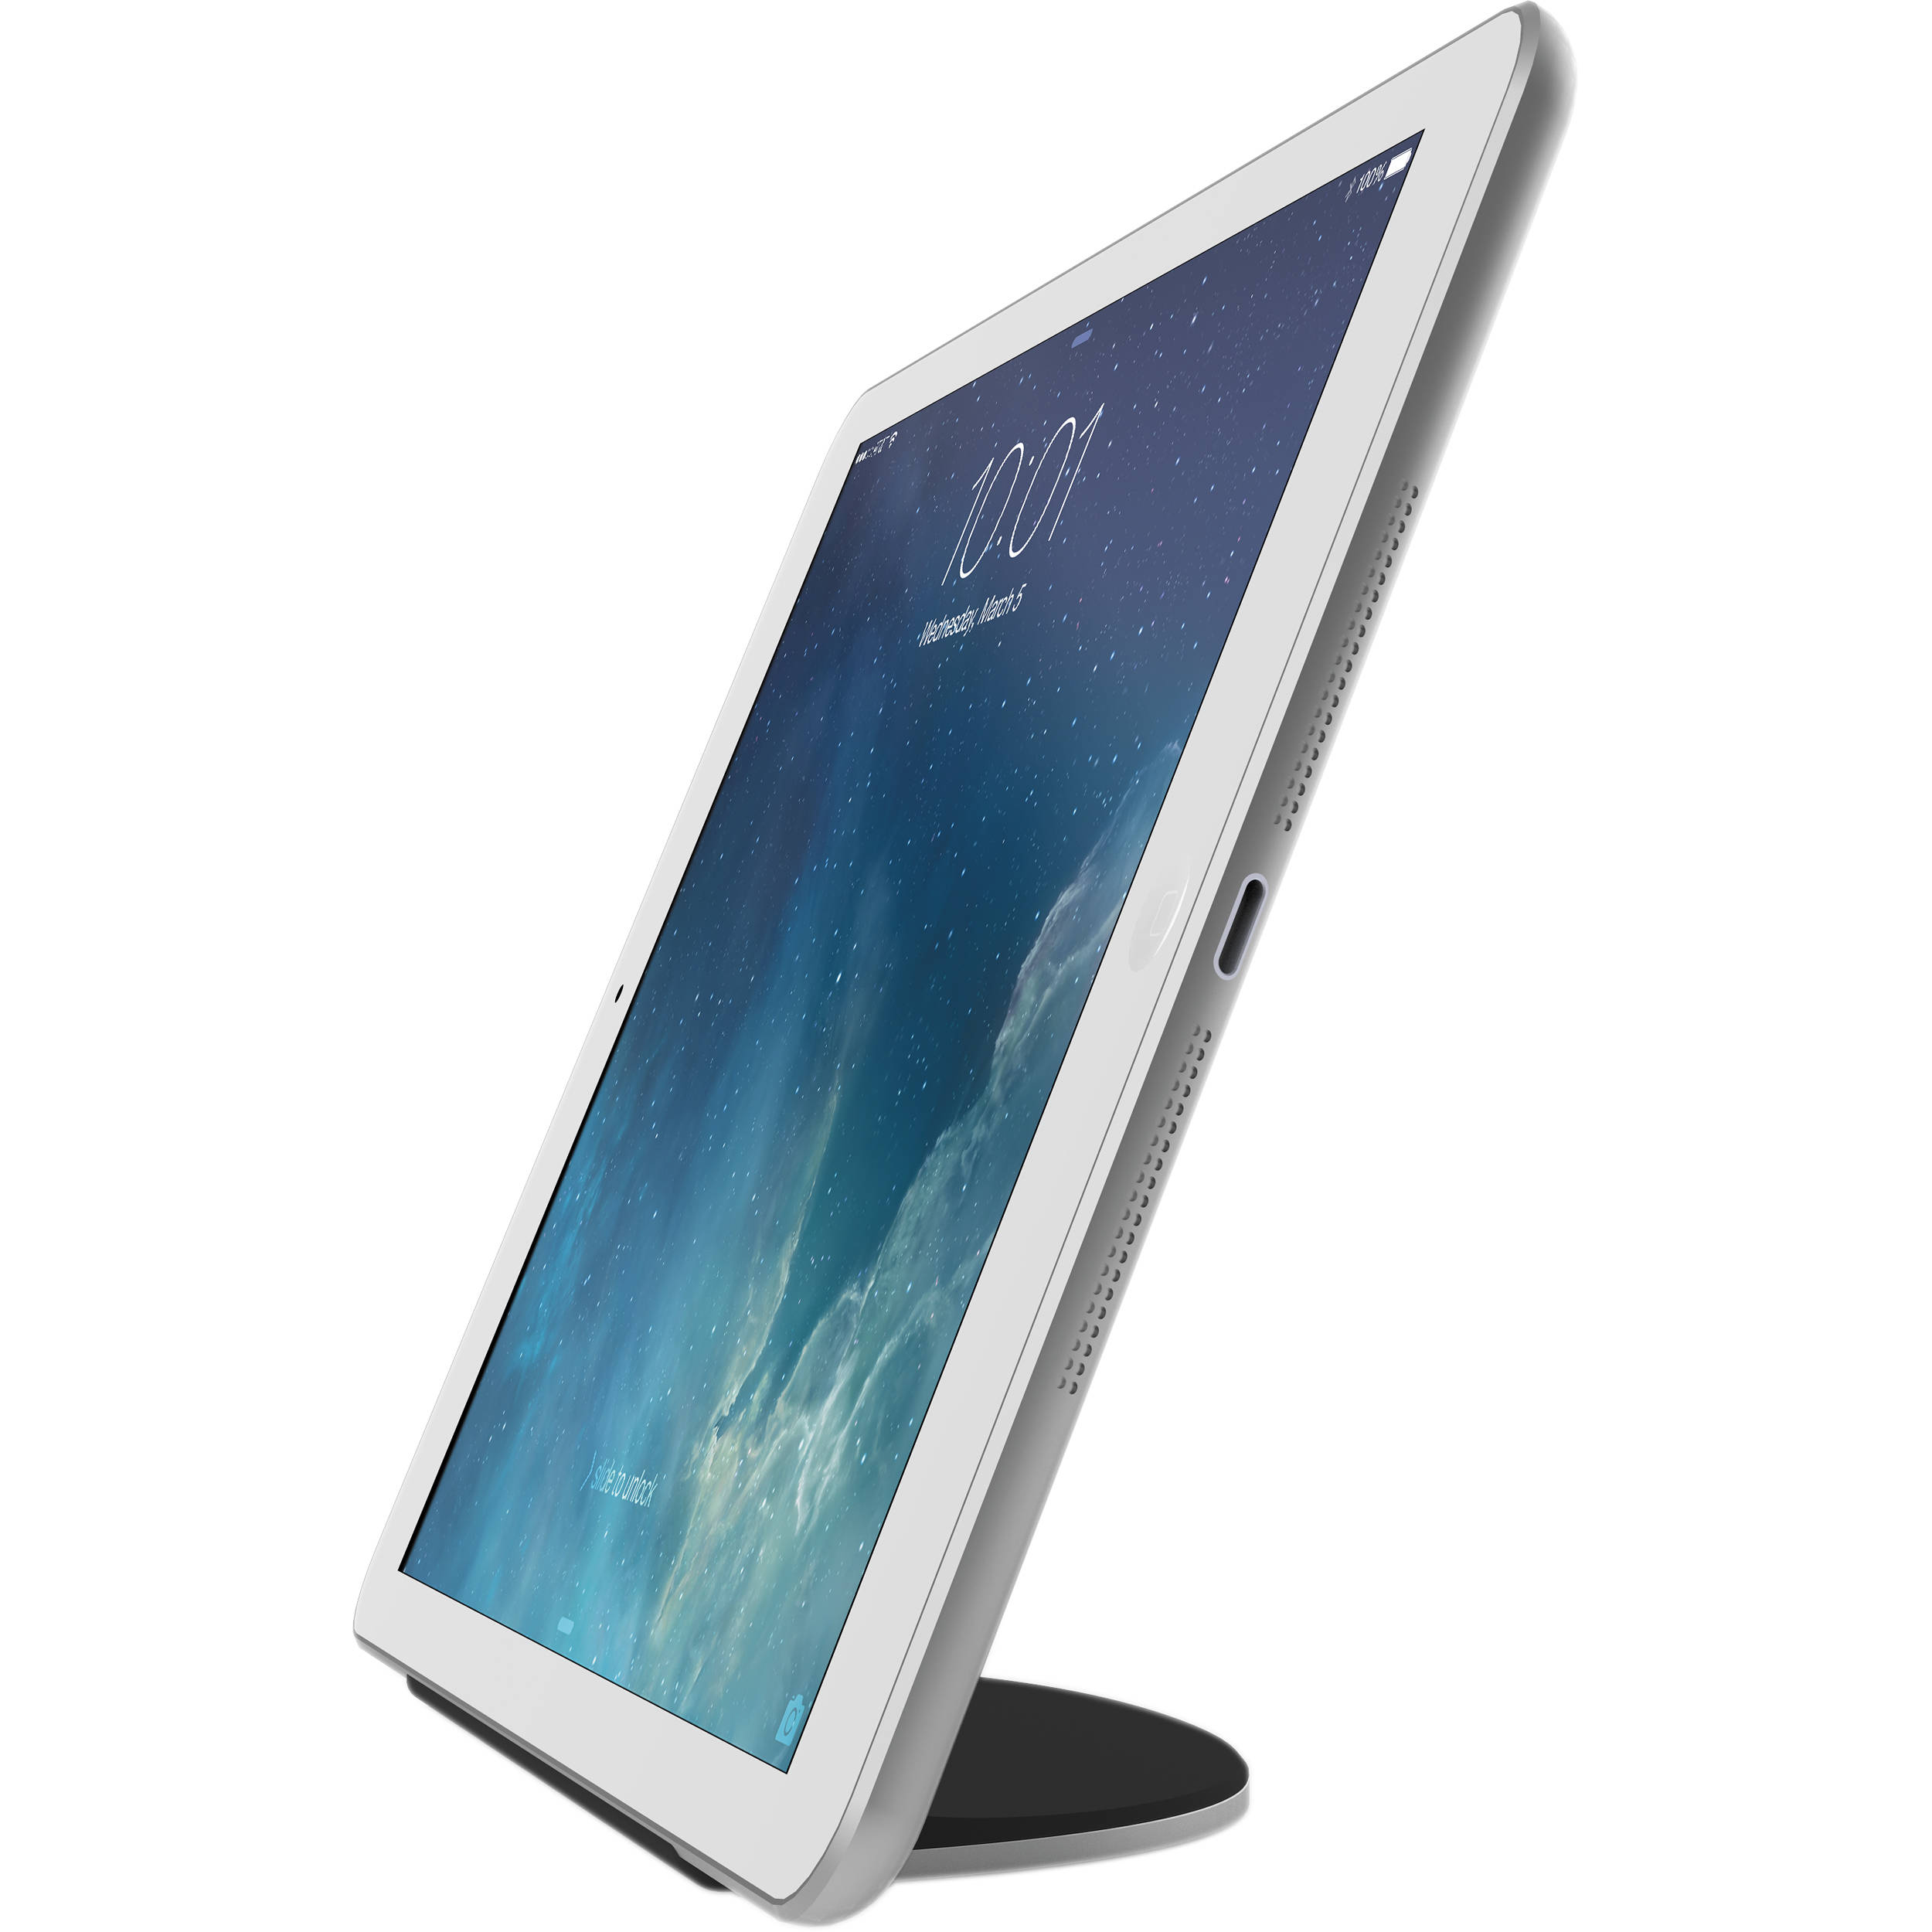 Ten one design magnus stand for ipad air ipad t1 maga 101 for Stand 2 b